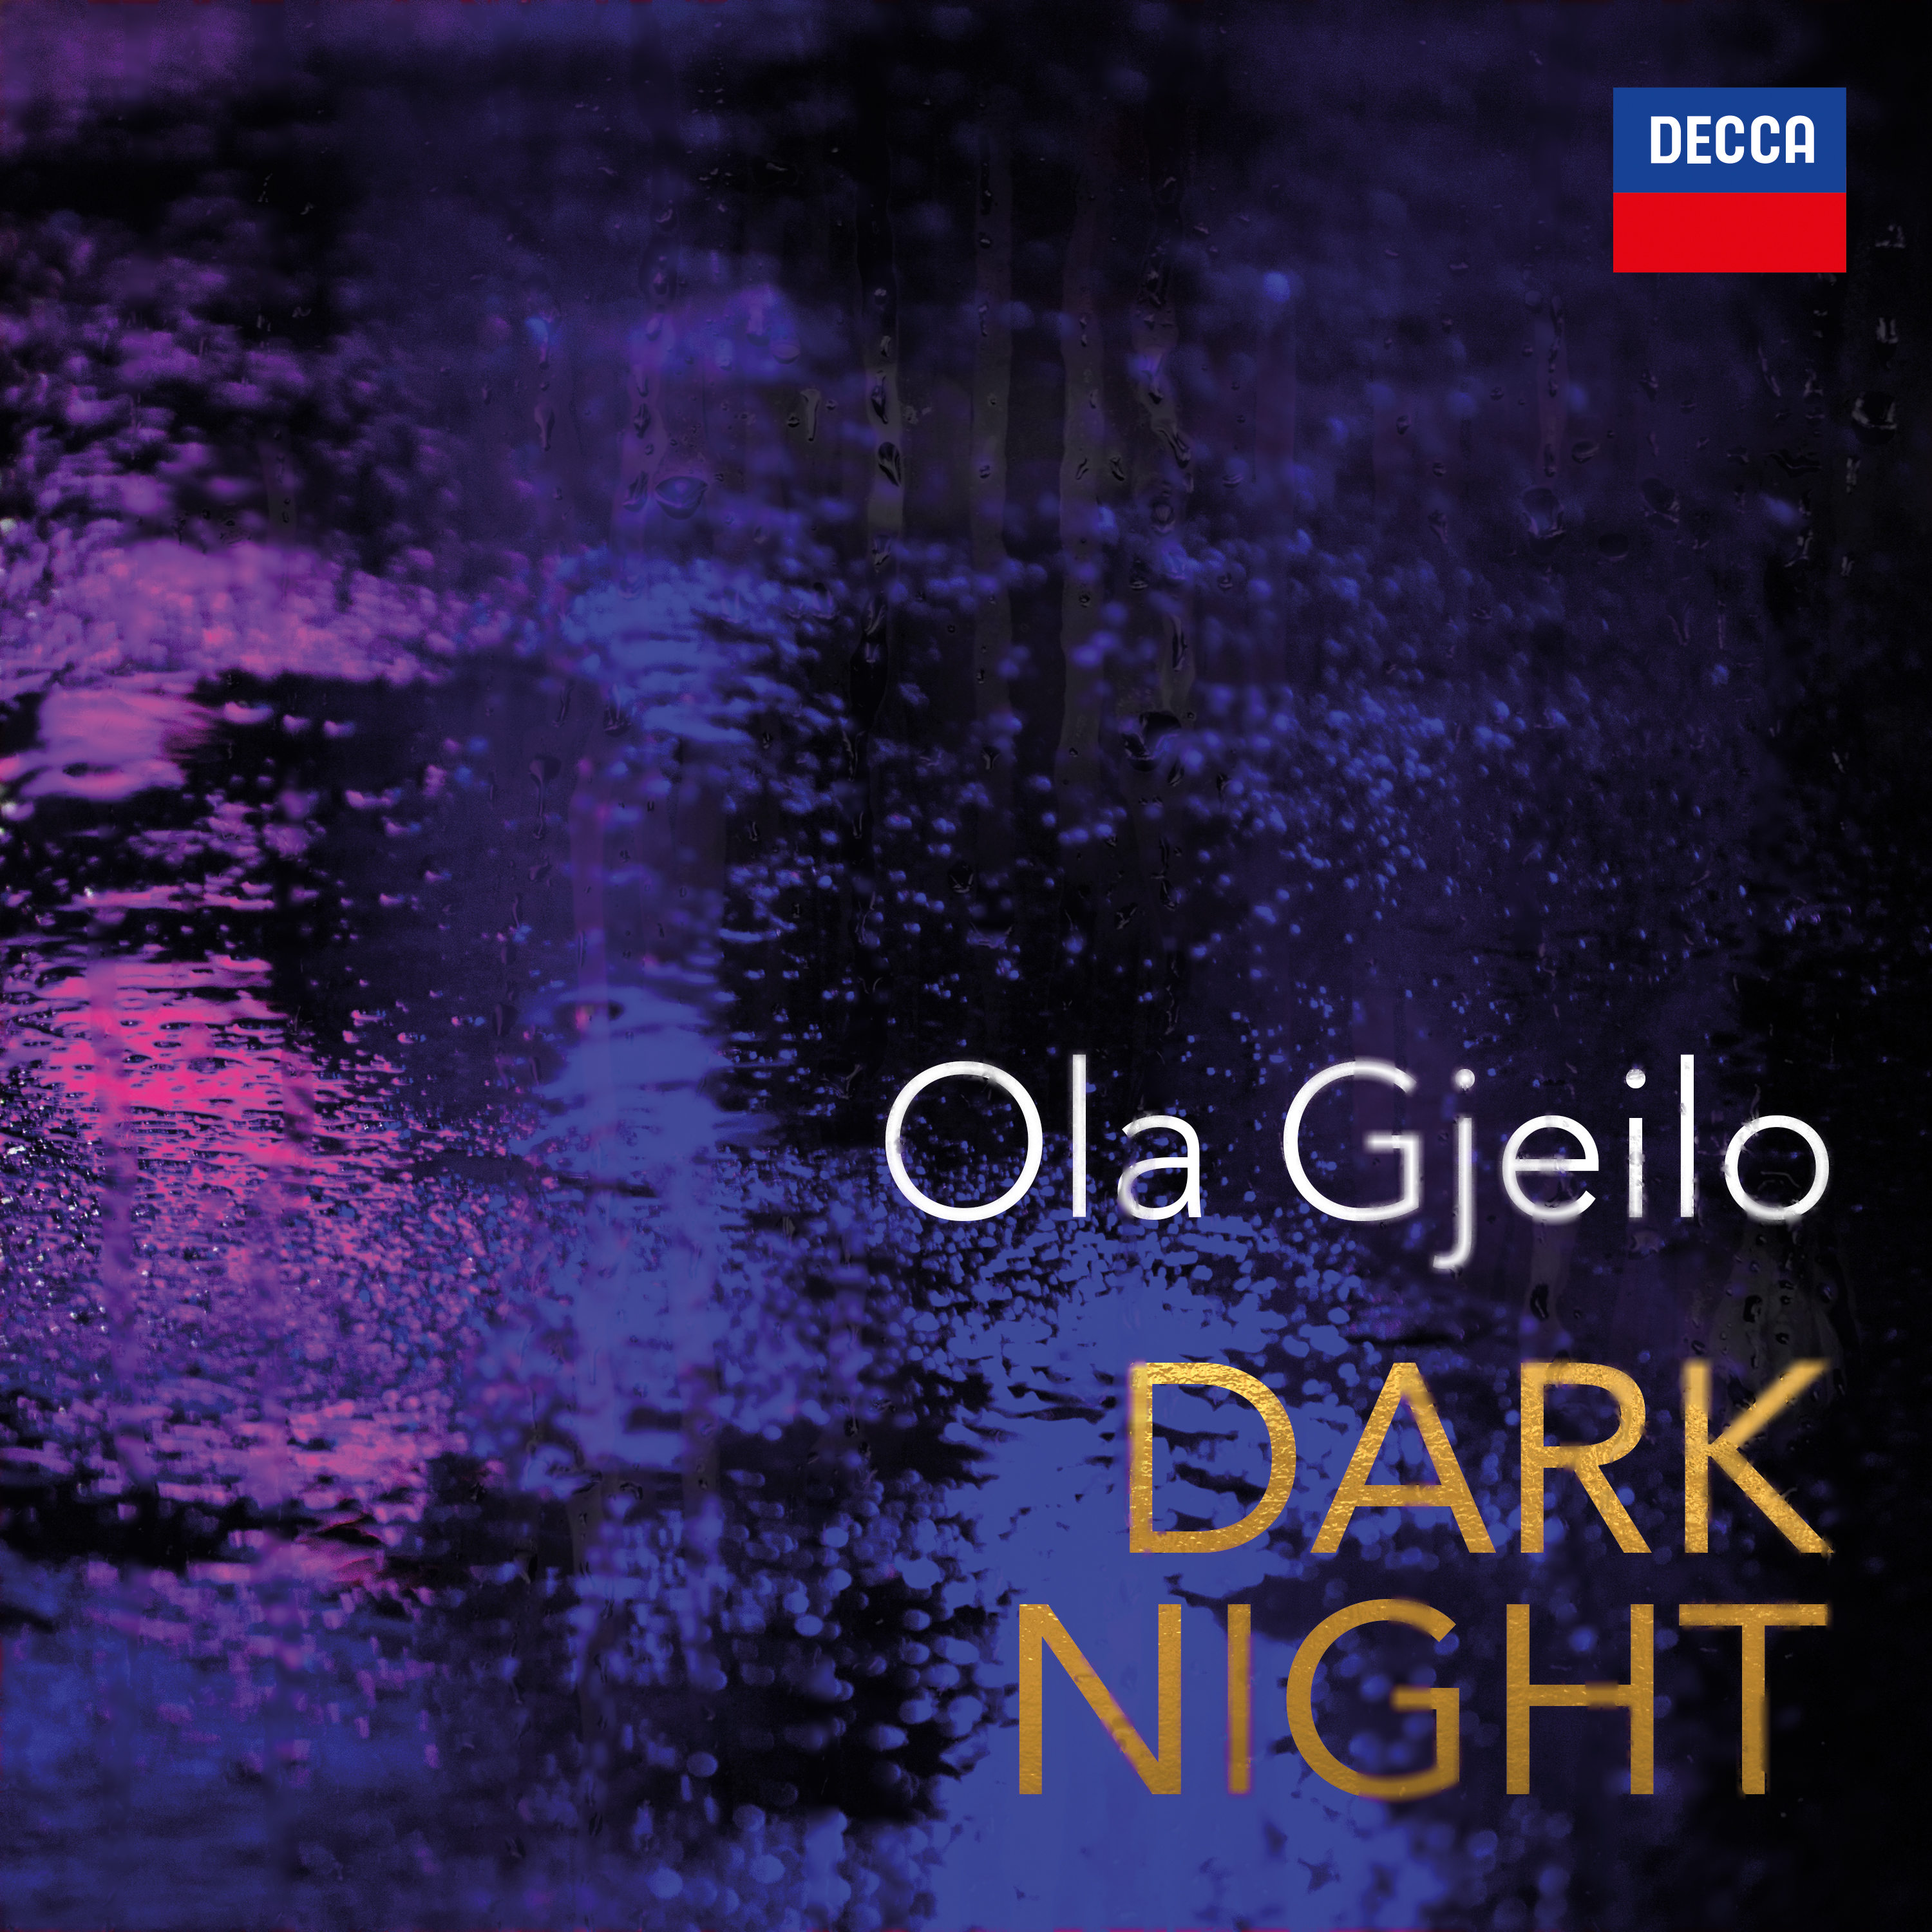 Dark Night album cover by Ola Gjeilo